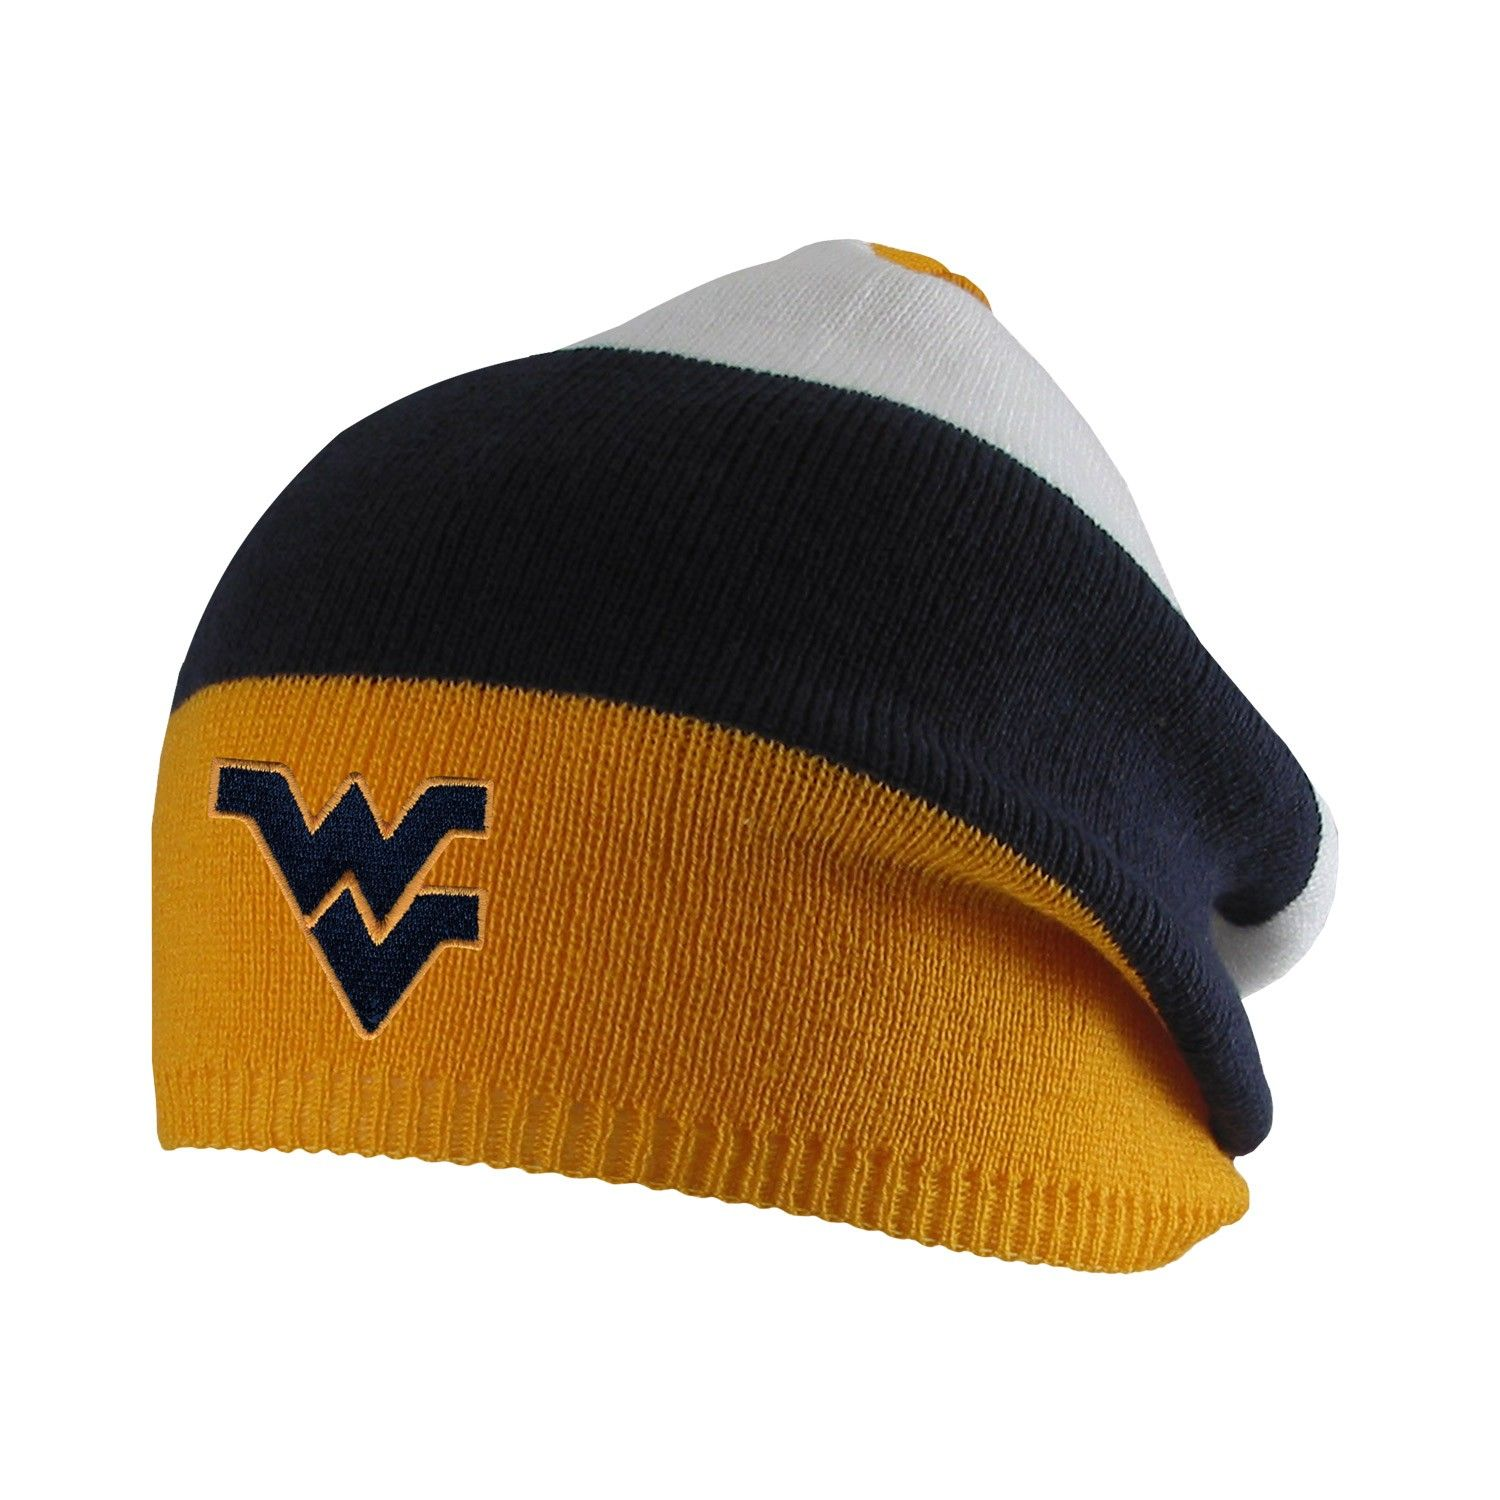 Our WVU Marley Slouchy Beanie is a colorful d4d83e282f58